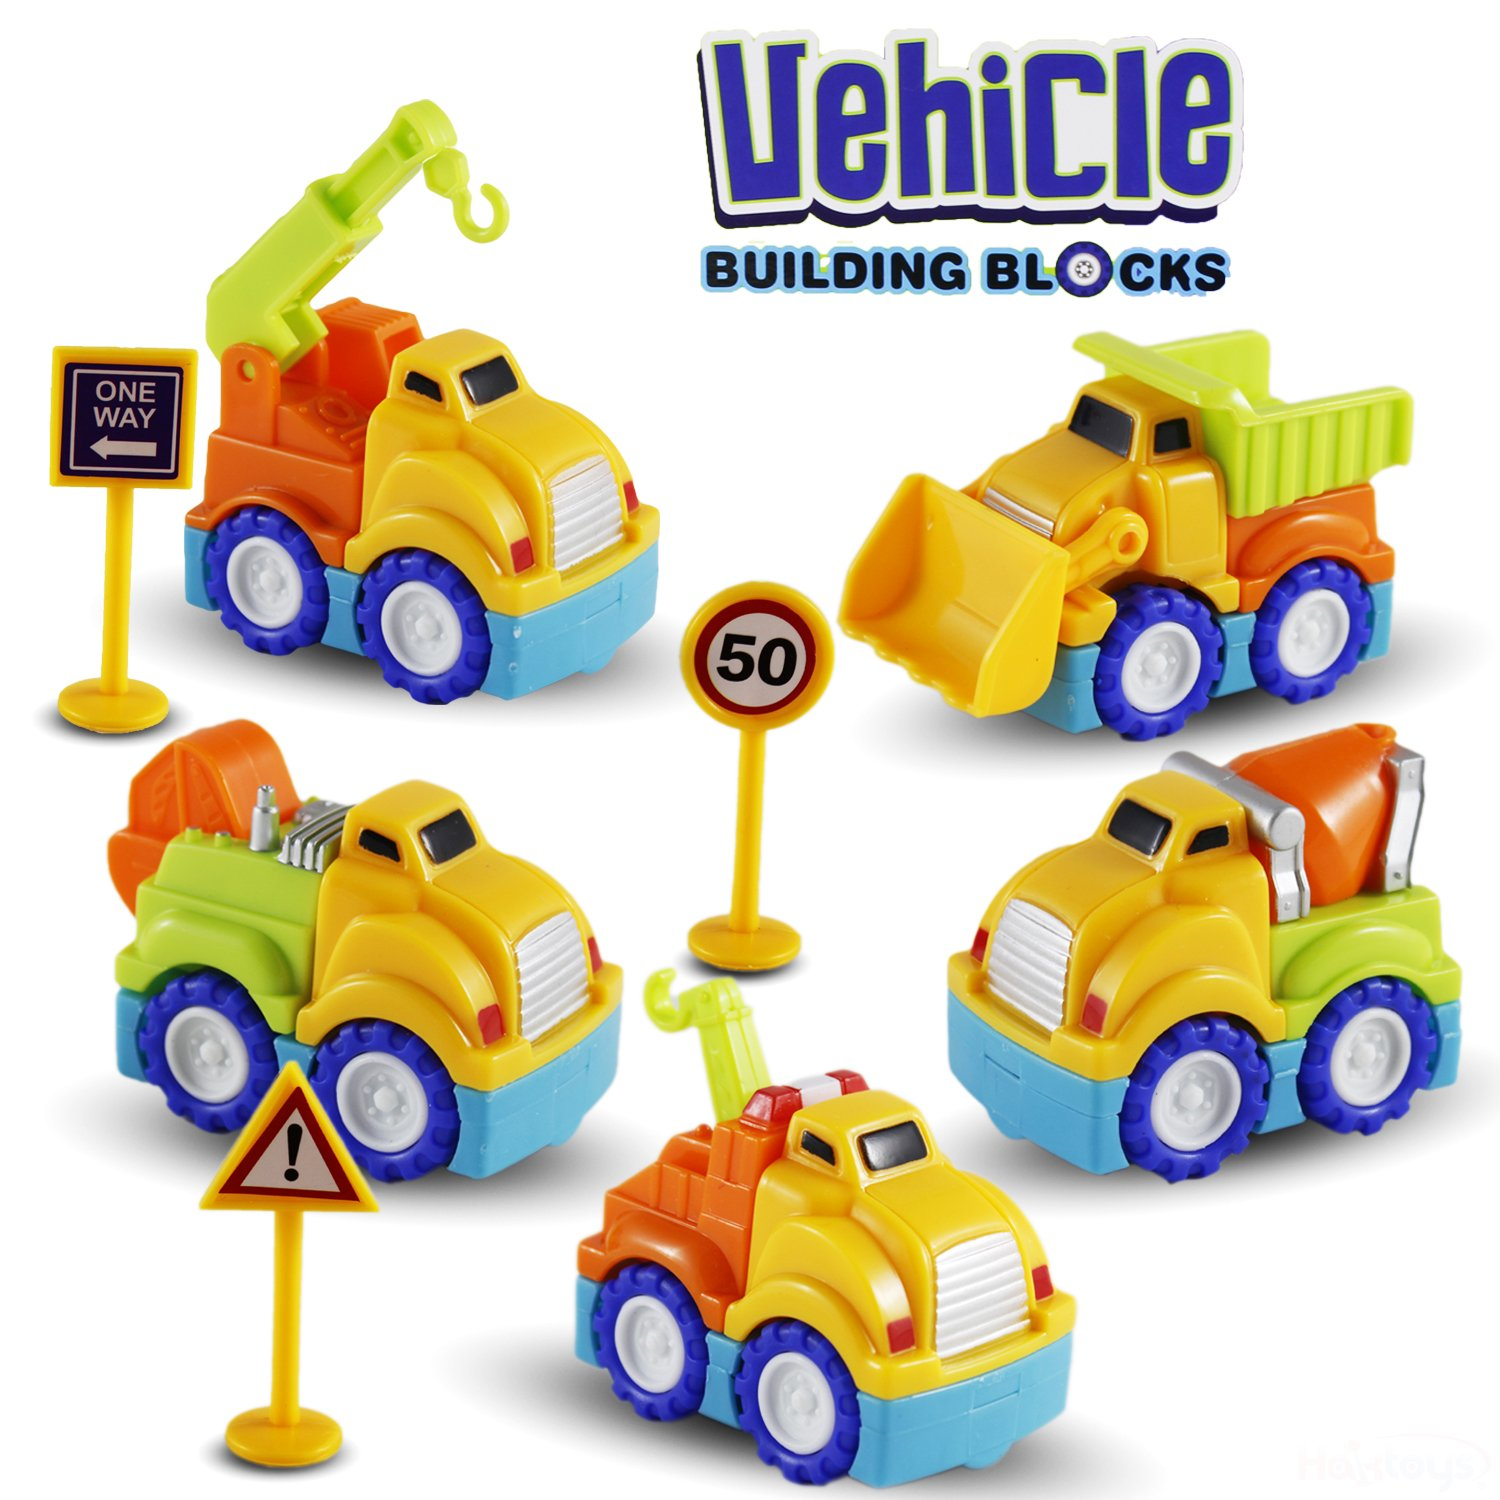 Kids Safe and Durable Haktoys Construction Building Blocks Set Mix-n-Match Take-Apart 18-Piece Detachable Vehicle Kit Boys /& Girls . Great Gift Toy for Toddlers Engineering STEM Educational